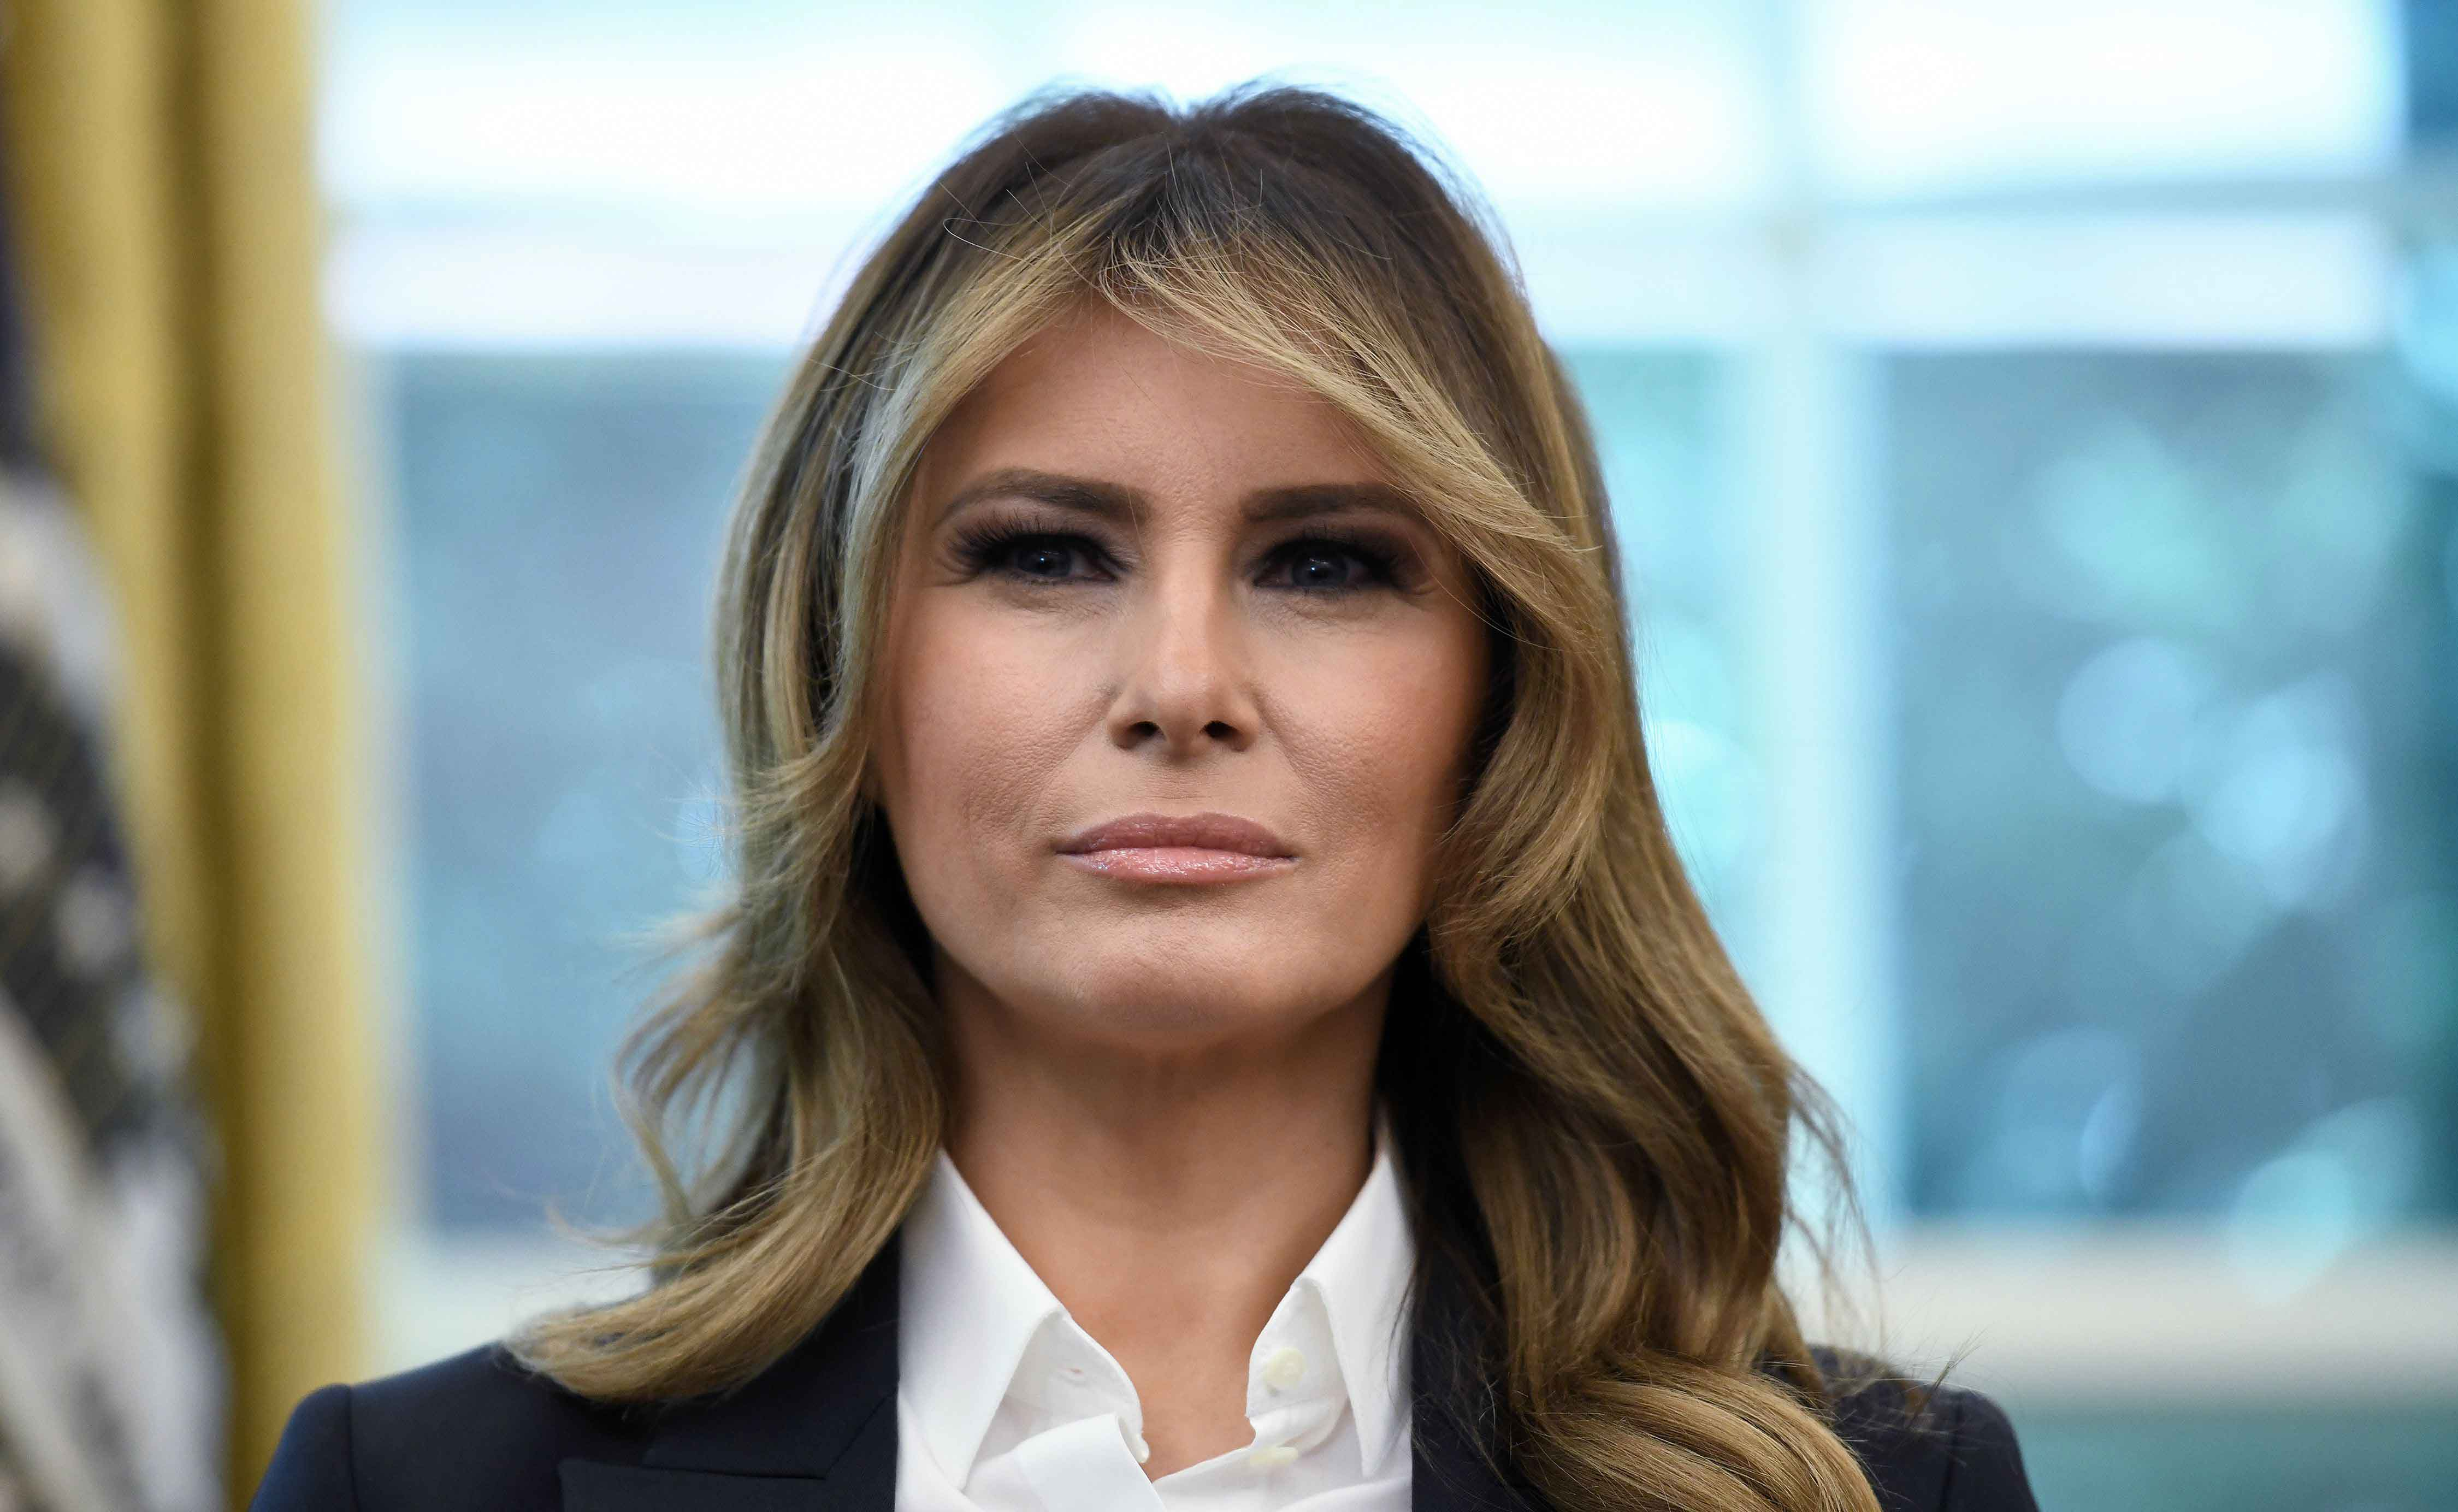 Melania Knauss - the current first lady of the United States